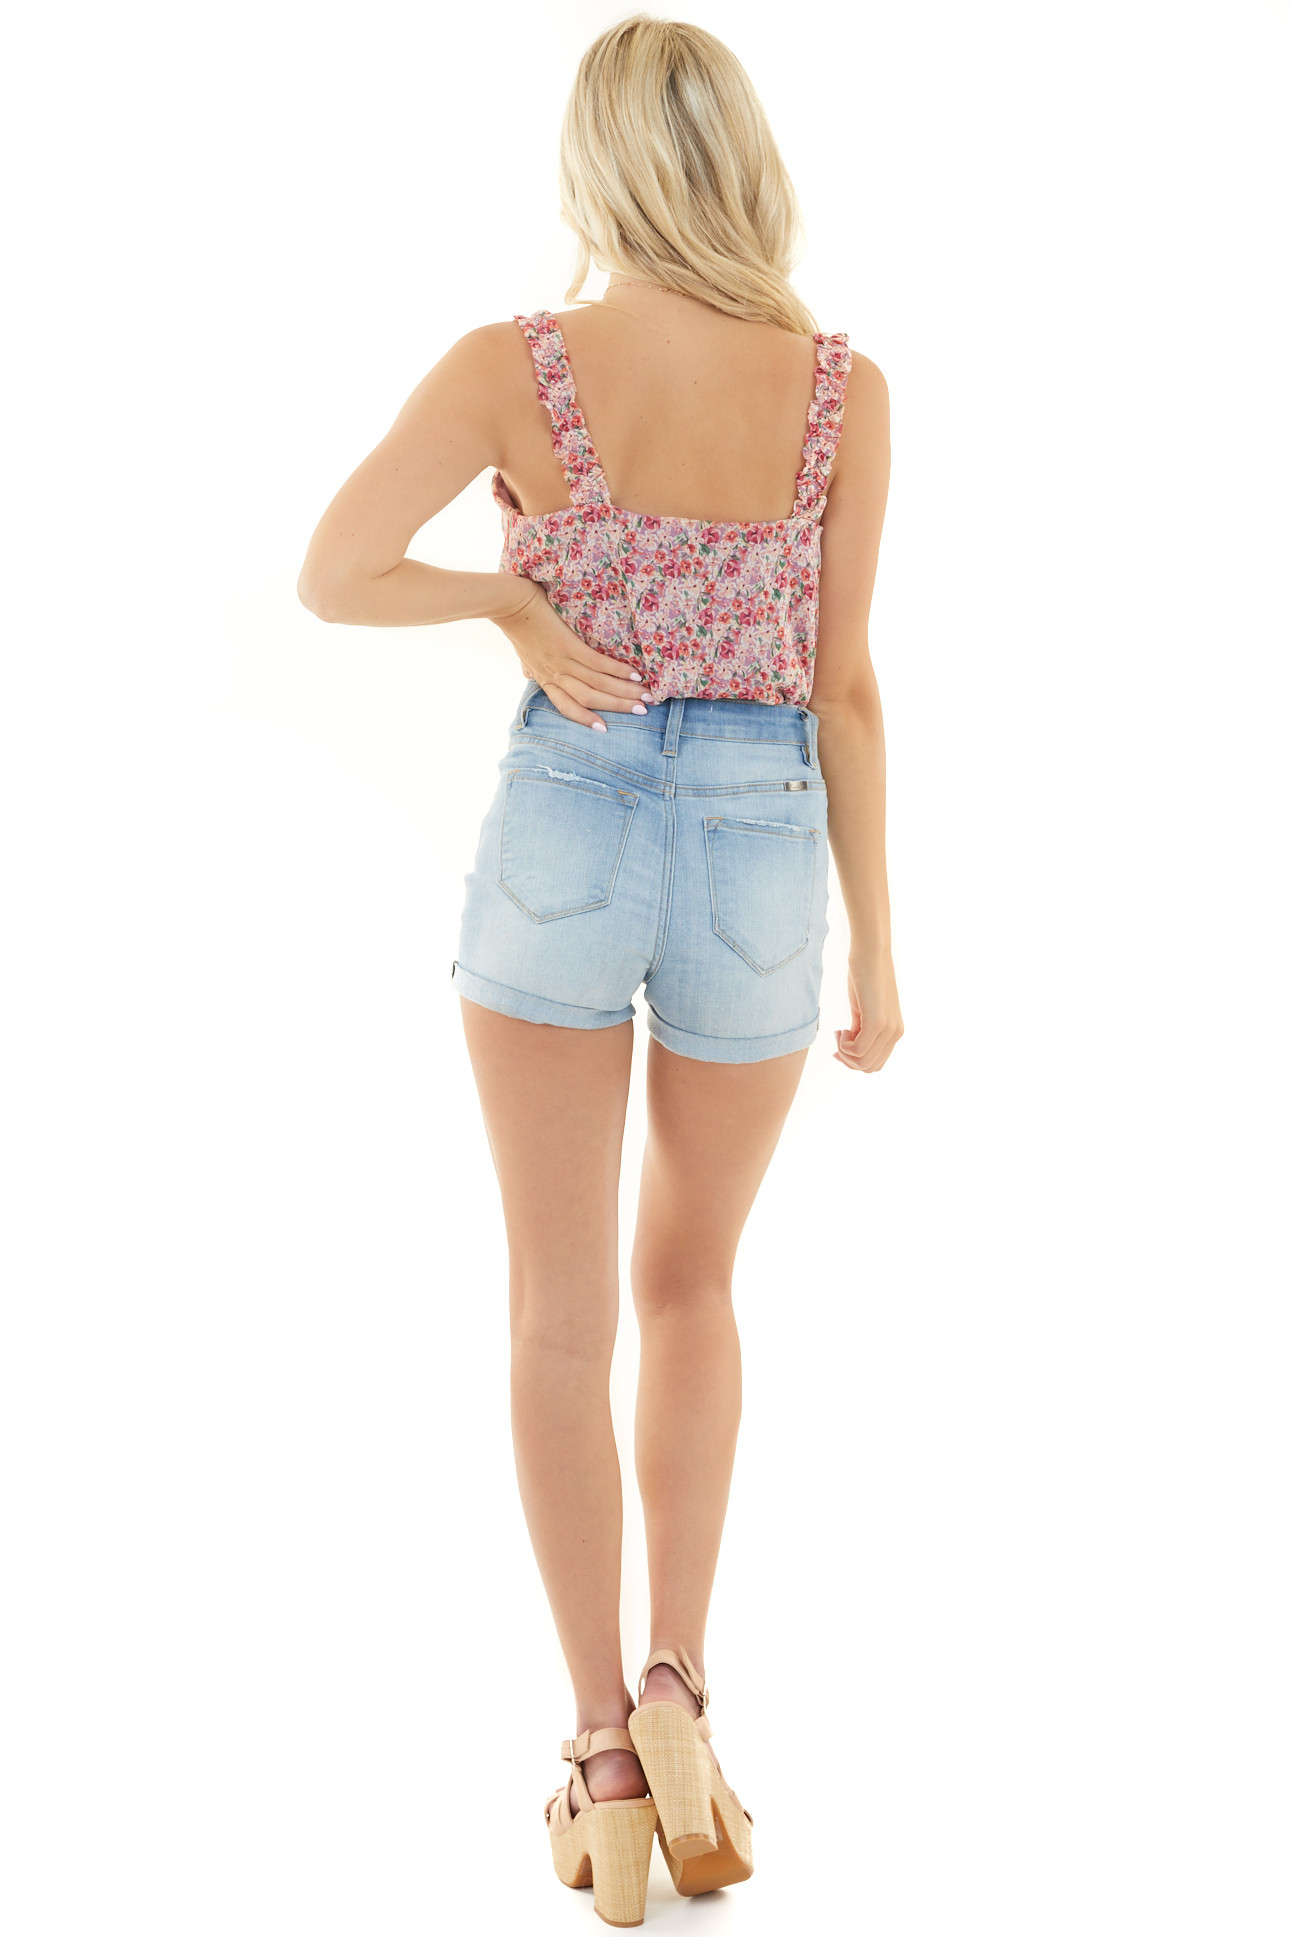 Mauve Floral Sleeveless Bodysuit with Ruffled Straps